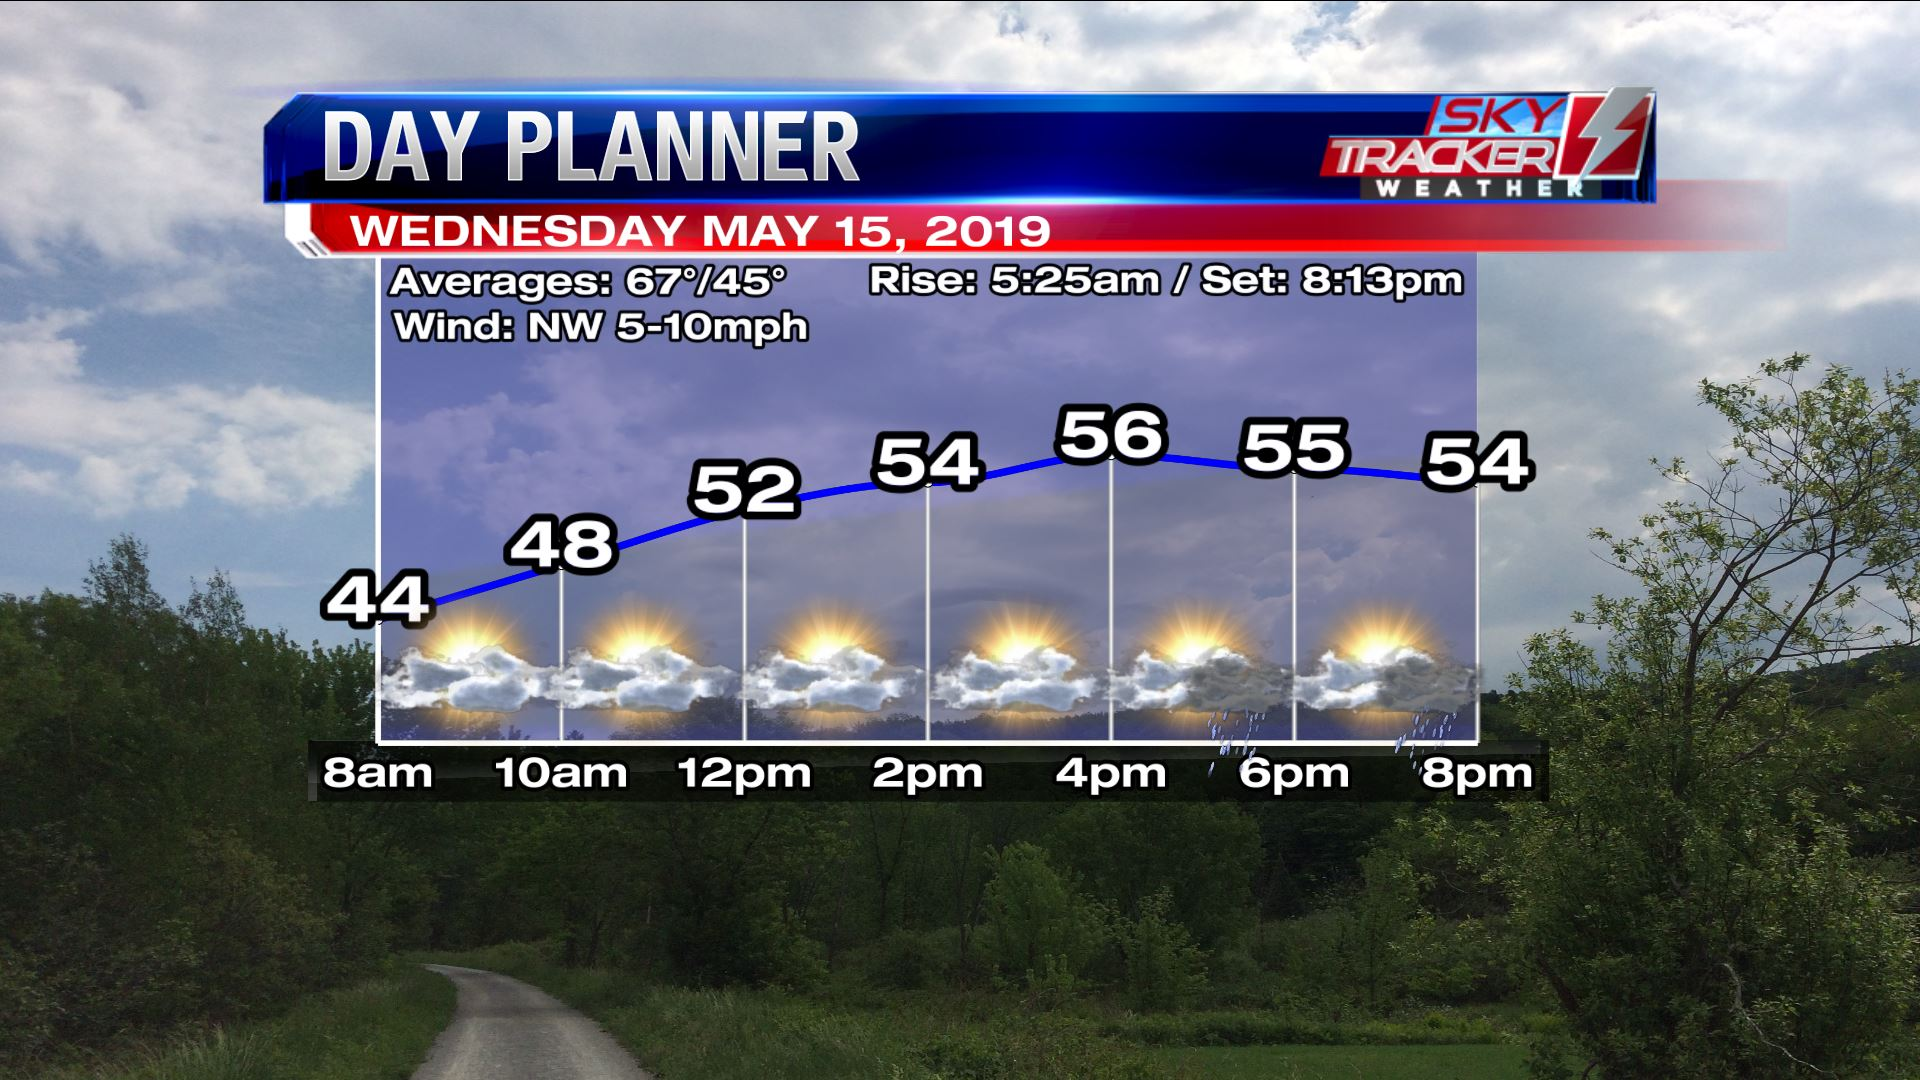 Planner for Wednesday May 15 2019